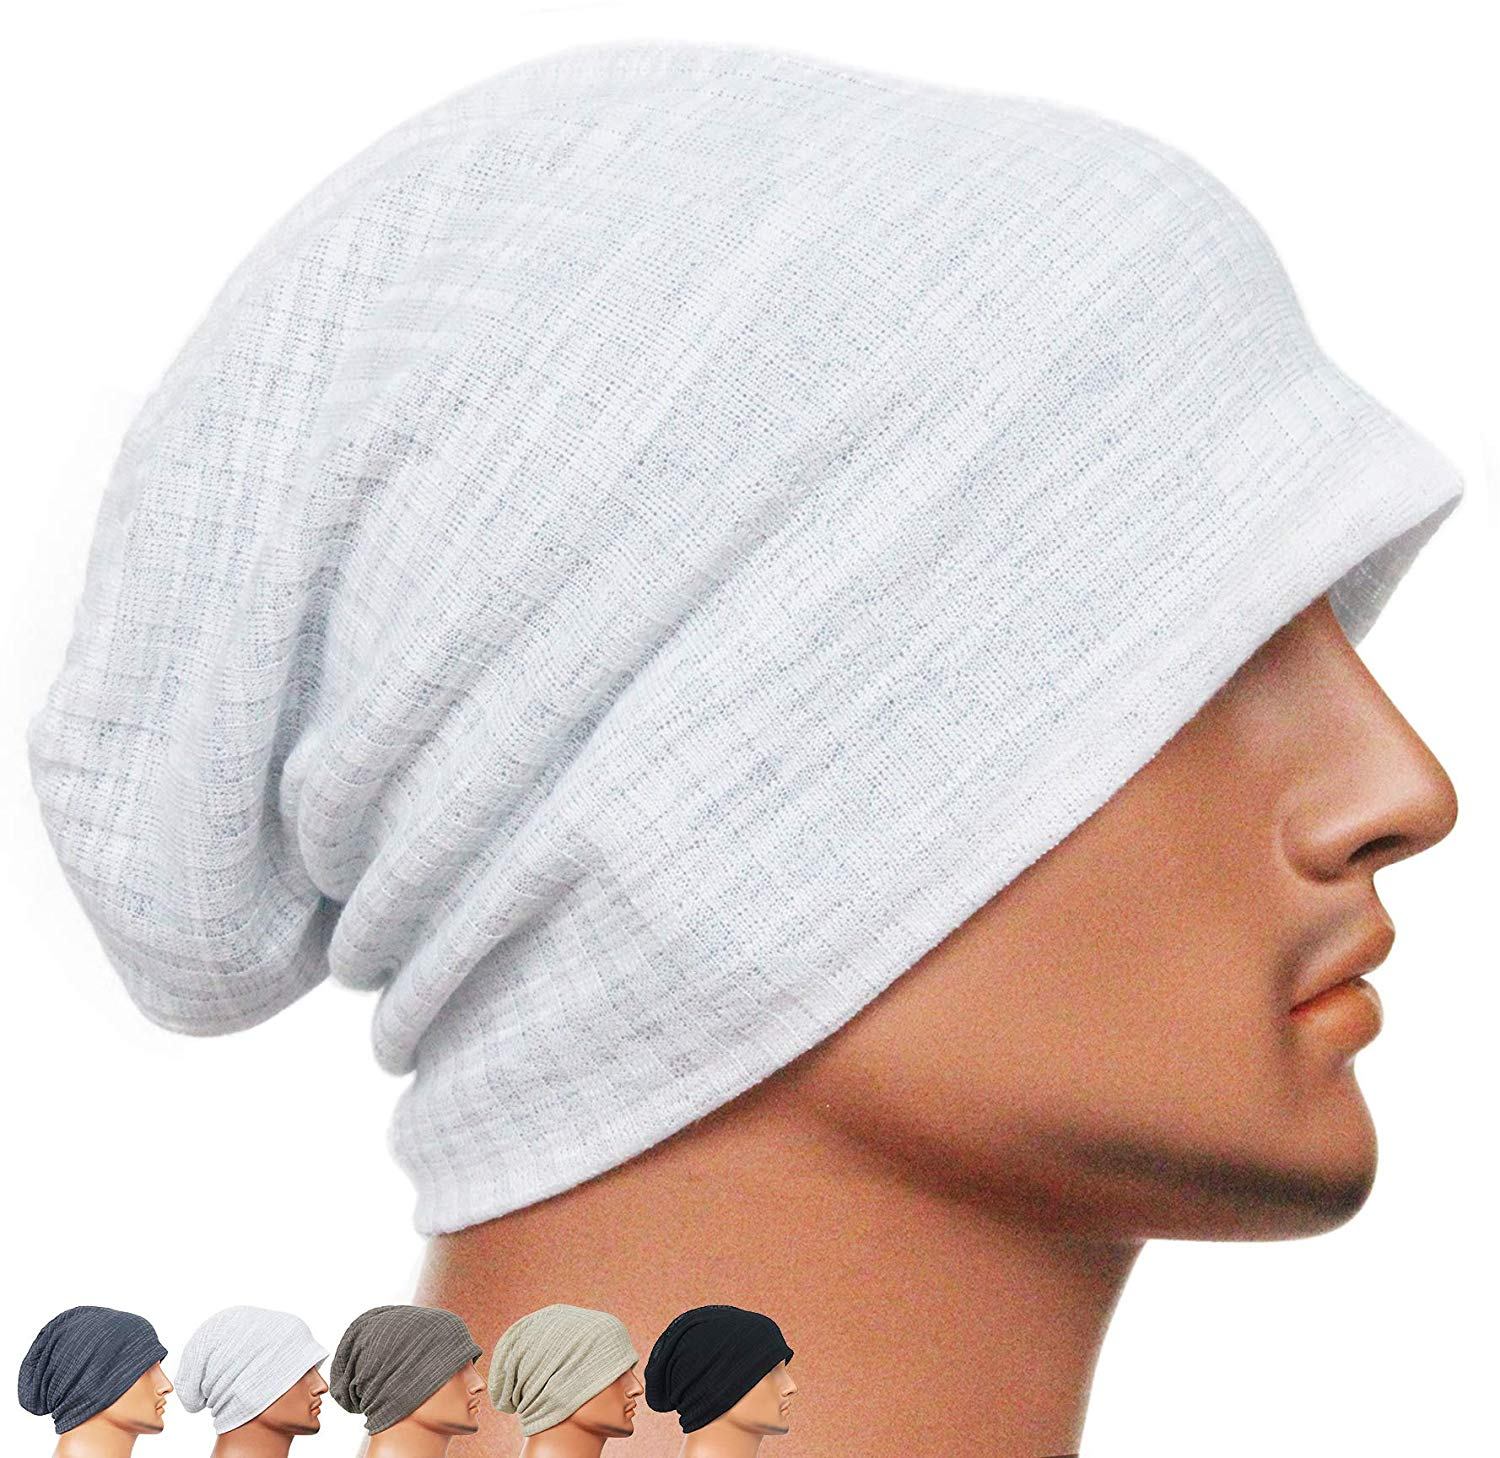 13603d0b4db Get Quotations · Rayna Fashion Men Women Summer Thin Slouchy Long Beanie Hat  Cool Baggy Skull Cap Stretchy Knit